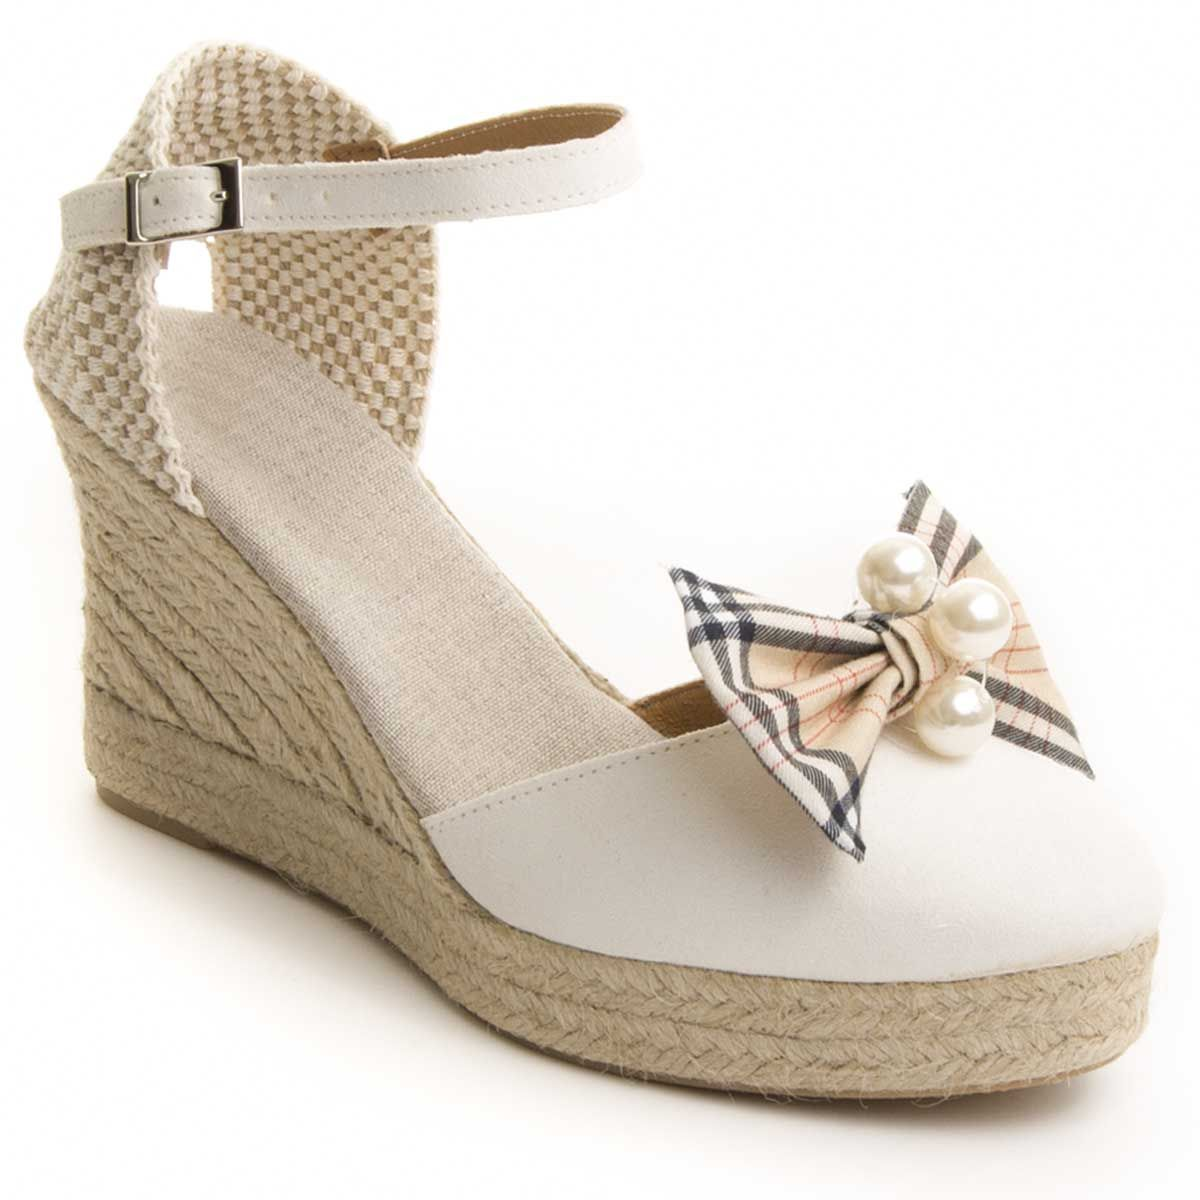 Maria Graor Ankle Strap Wedge Espadrille in White